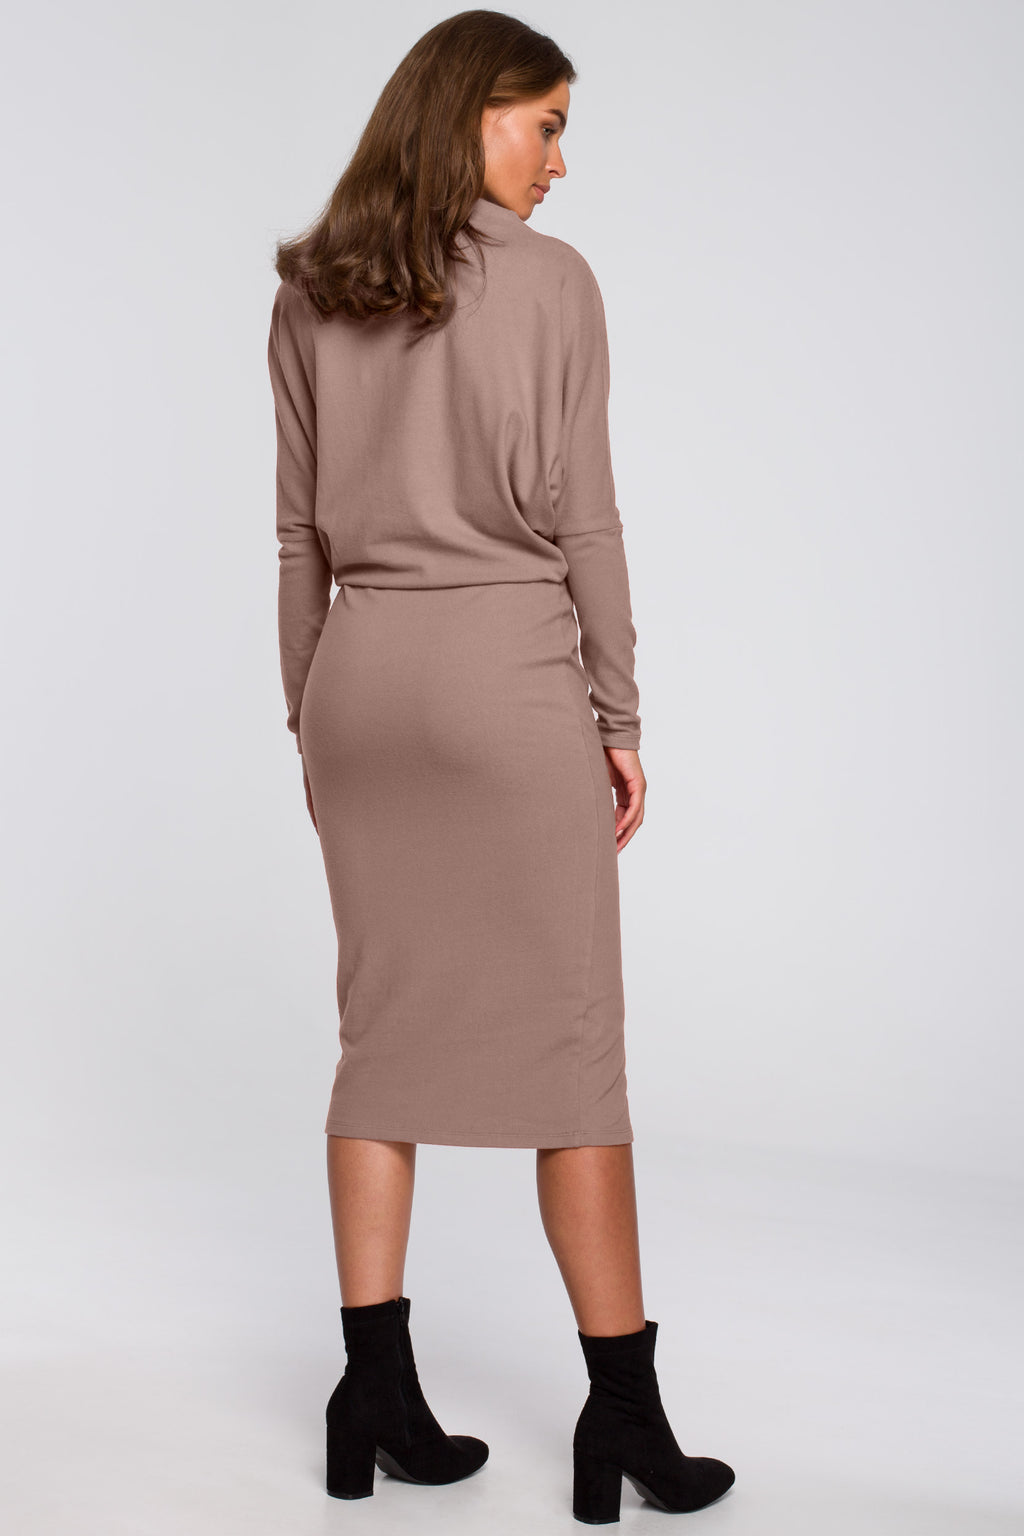 Beige Viscose Midi Dress With Draped Neckline - So Chic Boutique